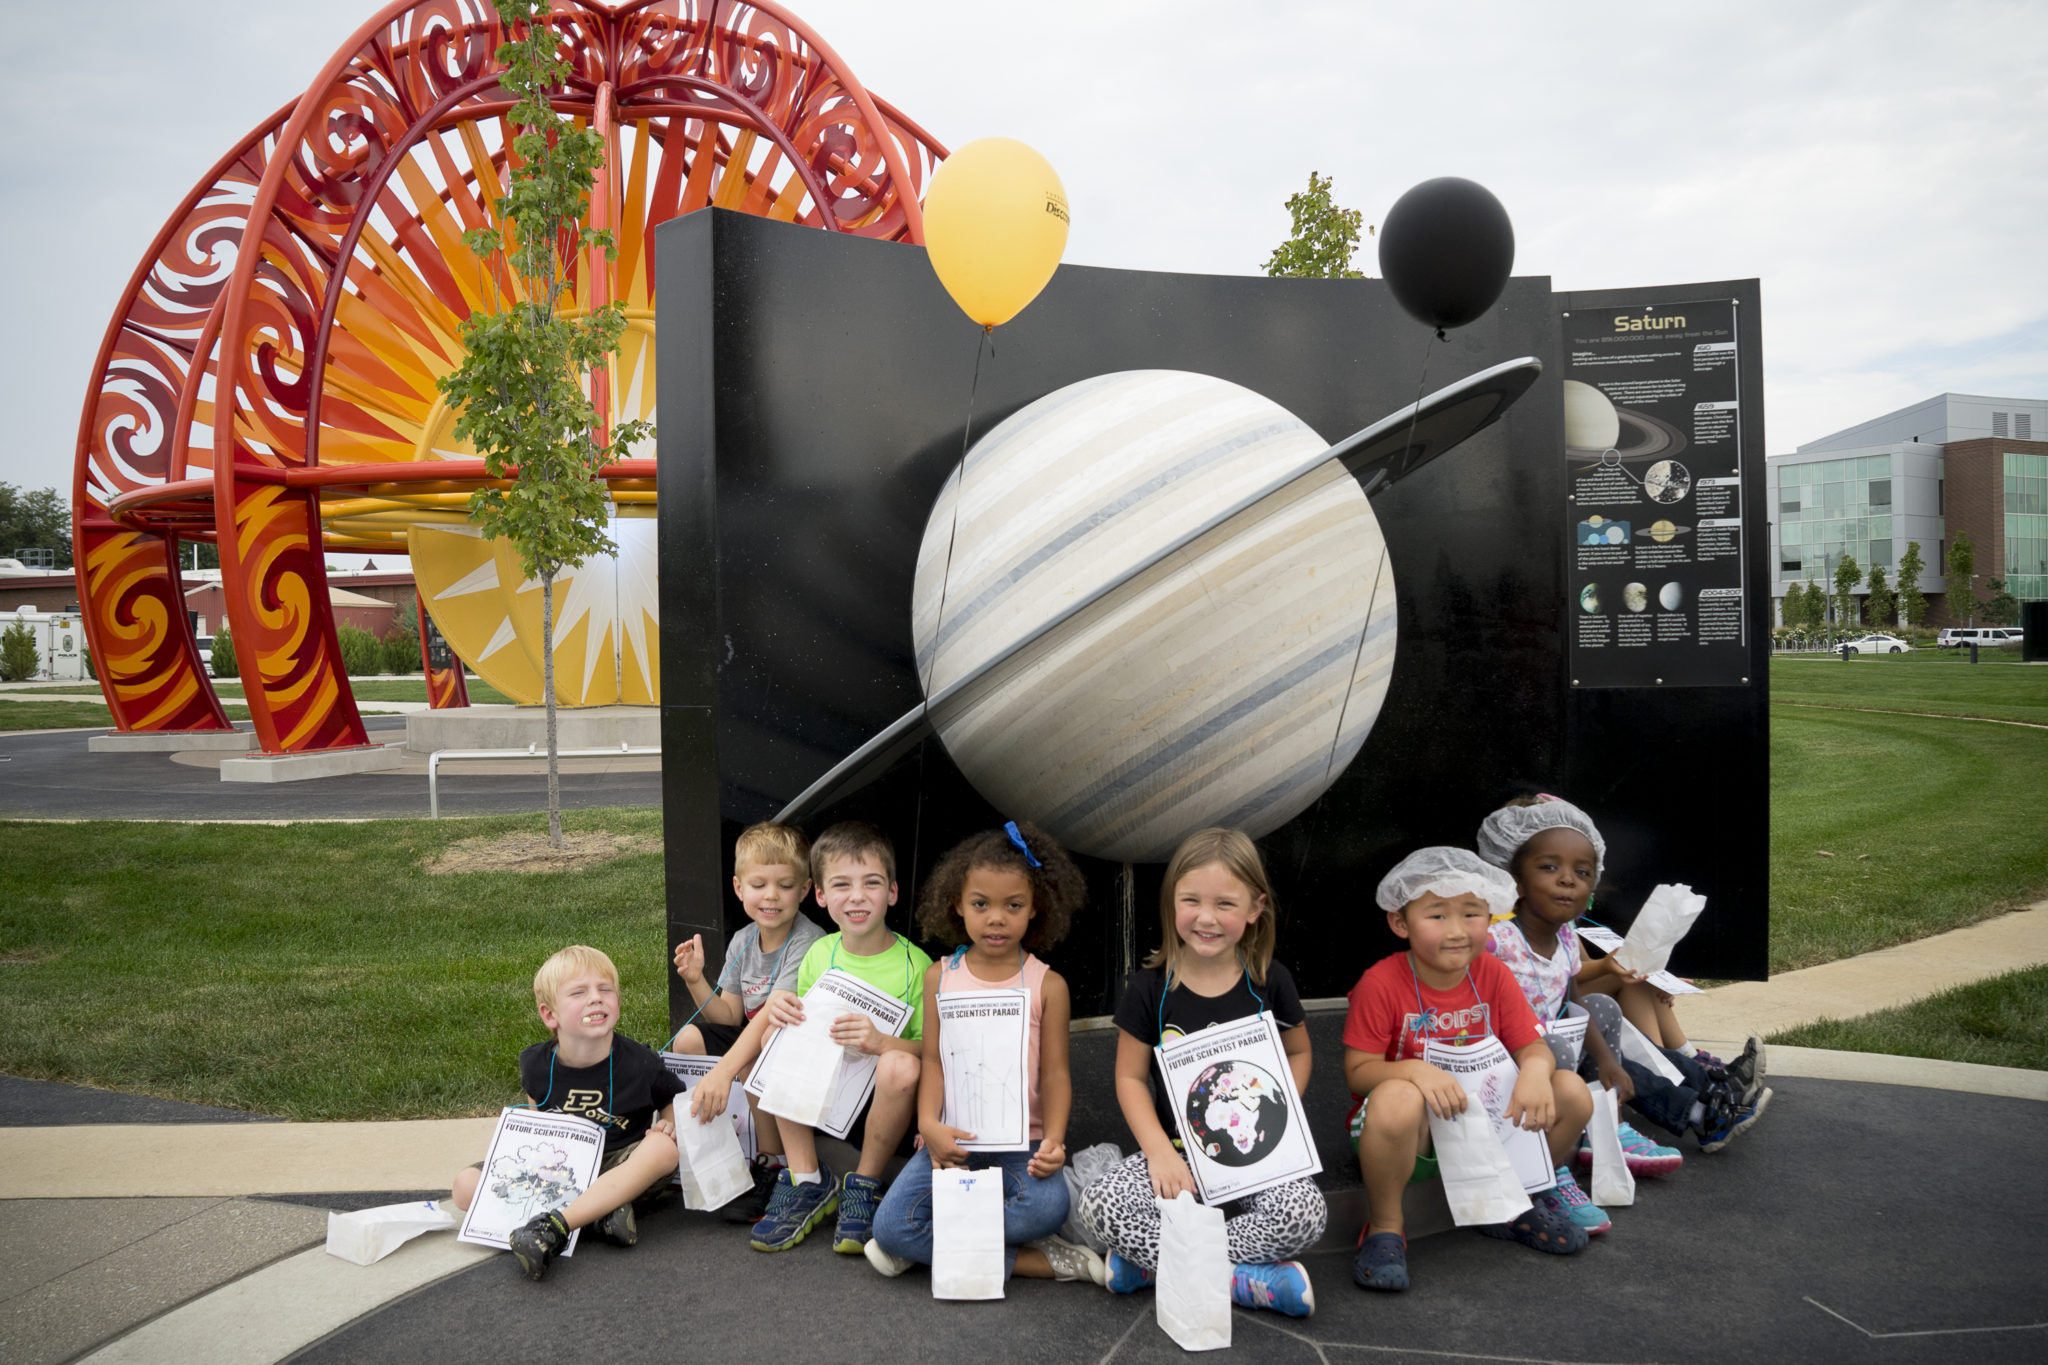 Preschoolers at VOSS (Visit Our Solar System) exhibit